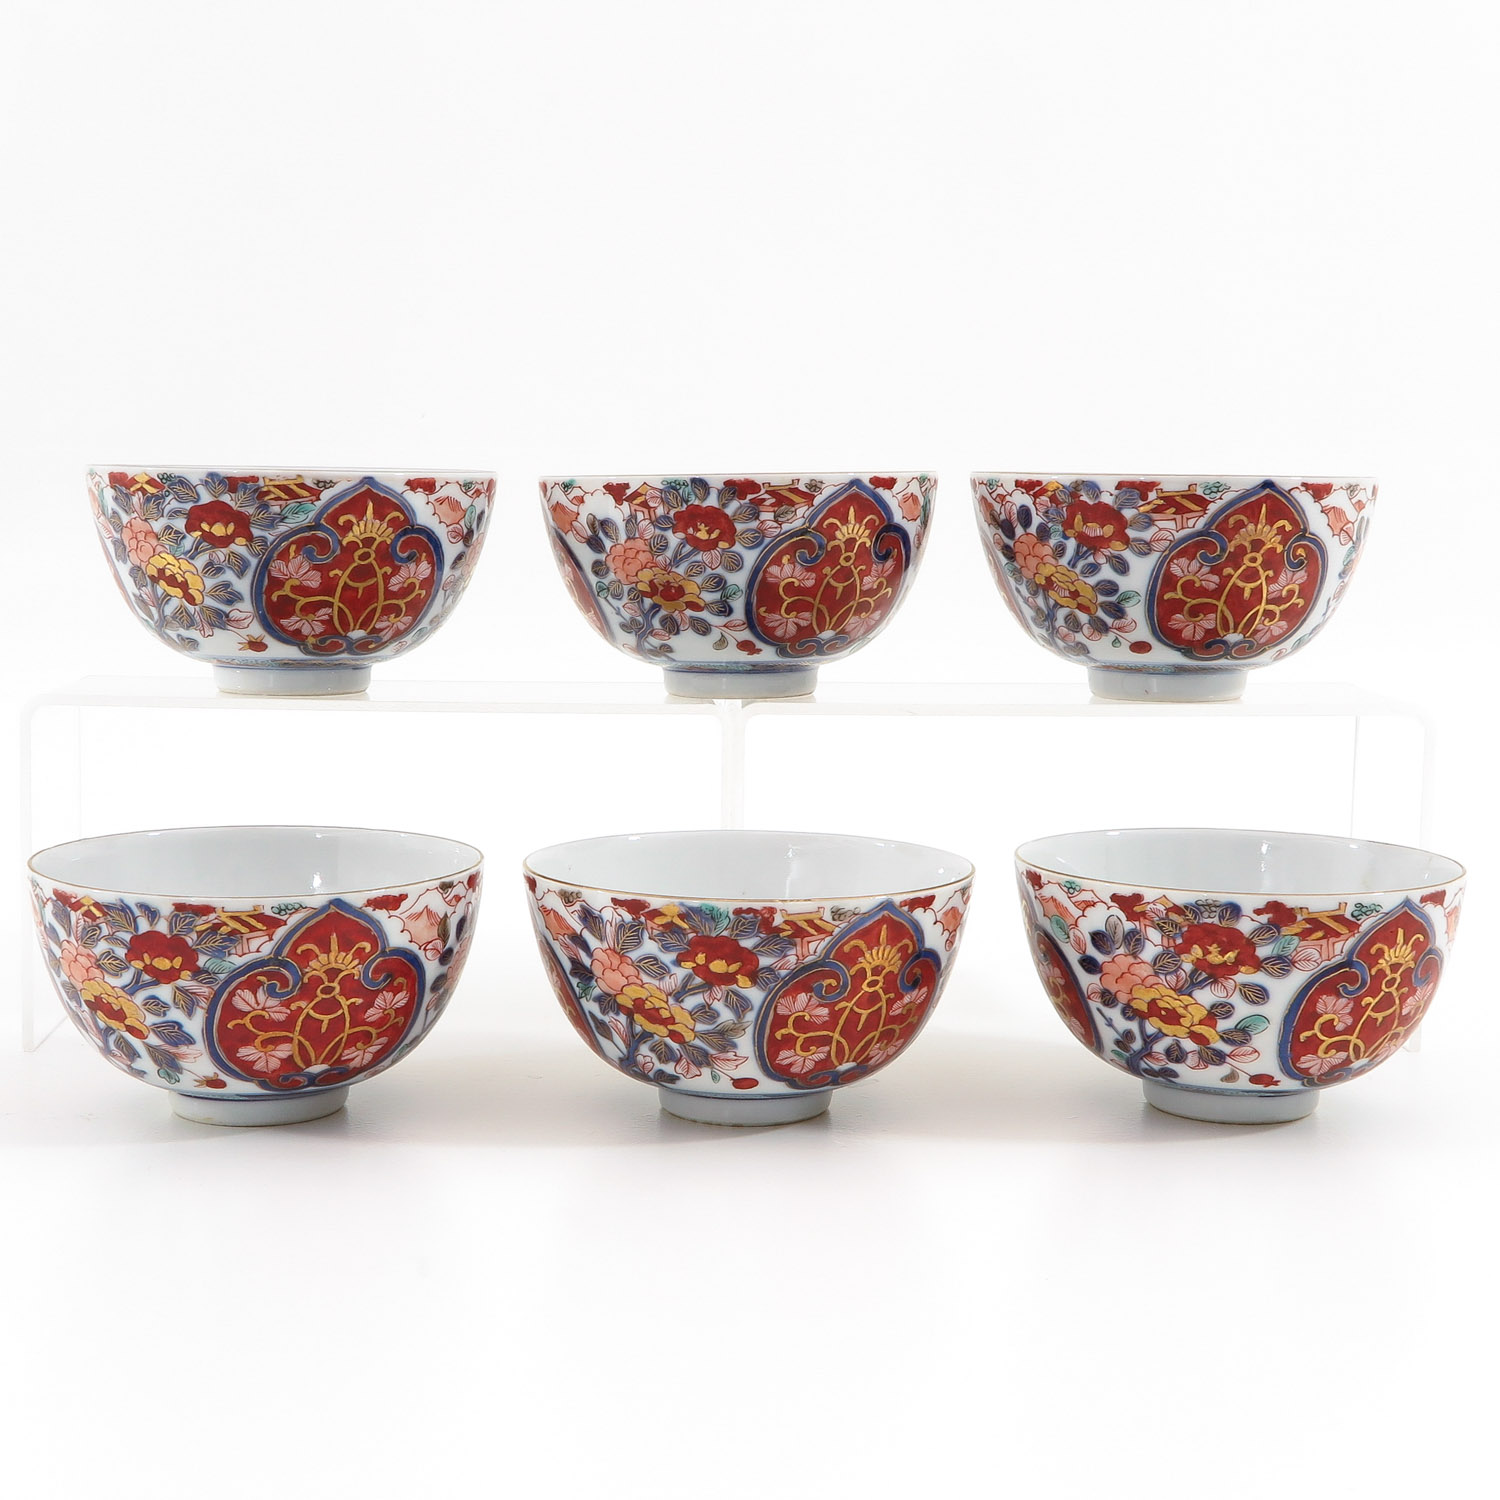 Lot 7057 - A Series of 6 Imari Bowls